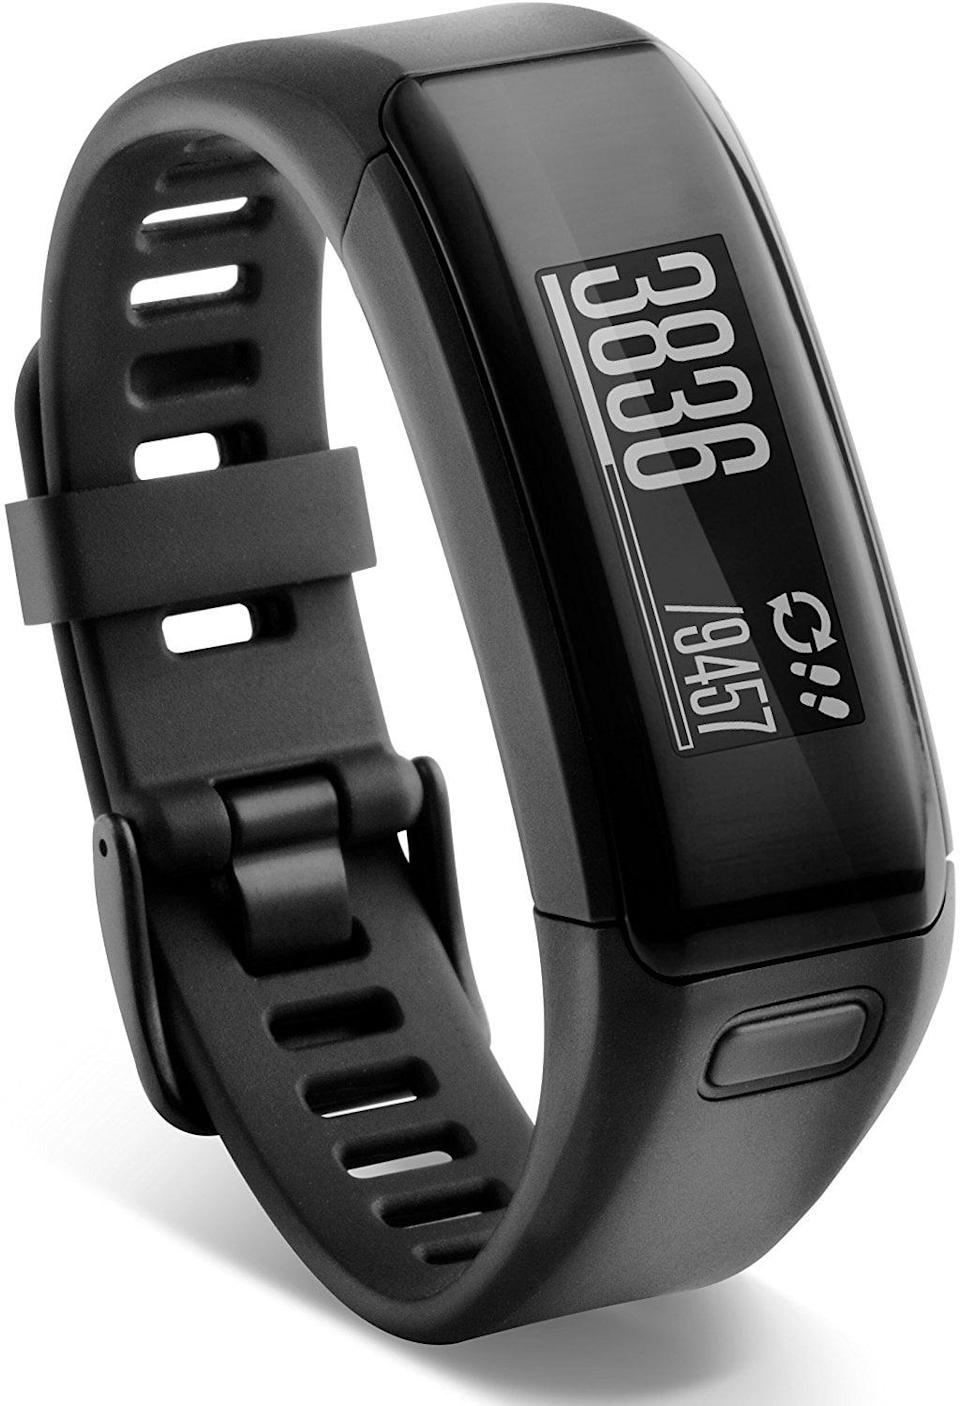 """<p><strong> The Tracker: </strong> <span>Garmin Vívosmart HR Activity Tracker Regular Fit </span> ($50)</p> <p><strong> The Rating: </strong> 4.2 stars</p> <p><strong> Why People Love It: </strong> In addition to tracking all things fitness related, this device can also receive texts, calls, emails, and social media notifications. This reviewer loved that it has so many functions. """"Personally, I really like getting notifications and being able to check the weather without having to dig out my phone. Plus, the Garmin app is getting better every day. I lost about 20 pounds over six months.""""</p>"""